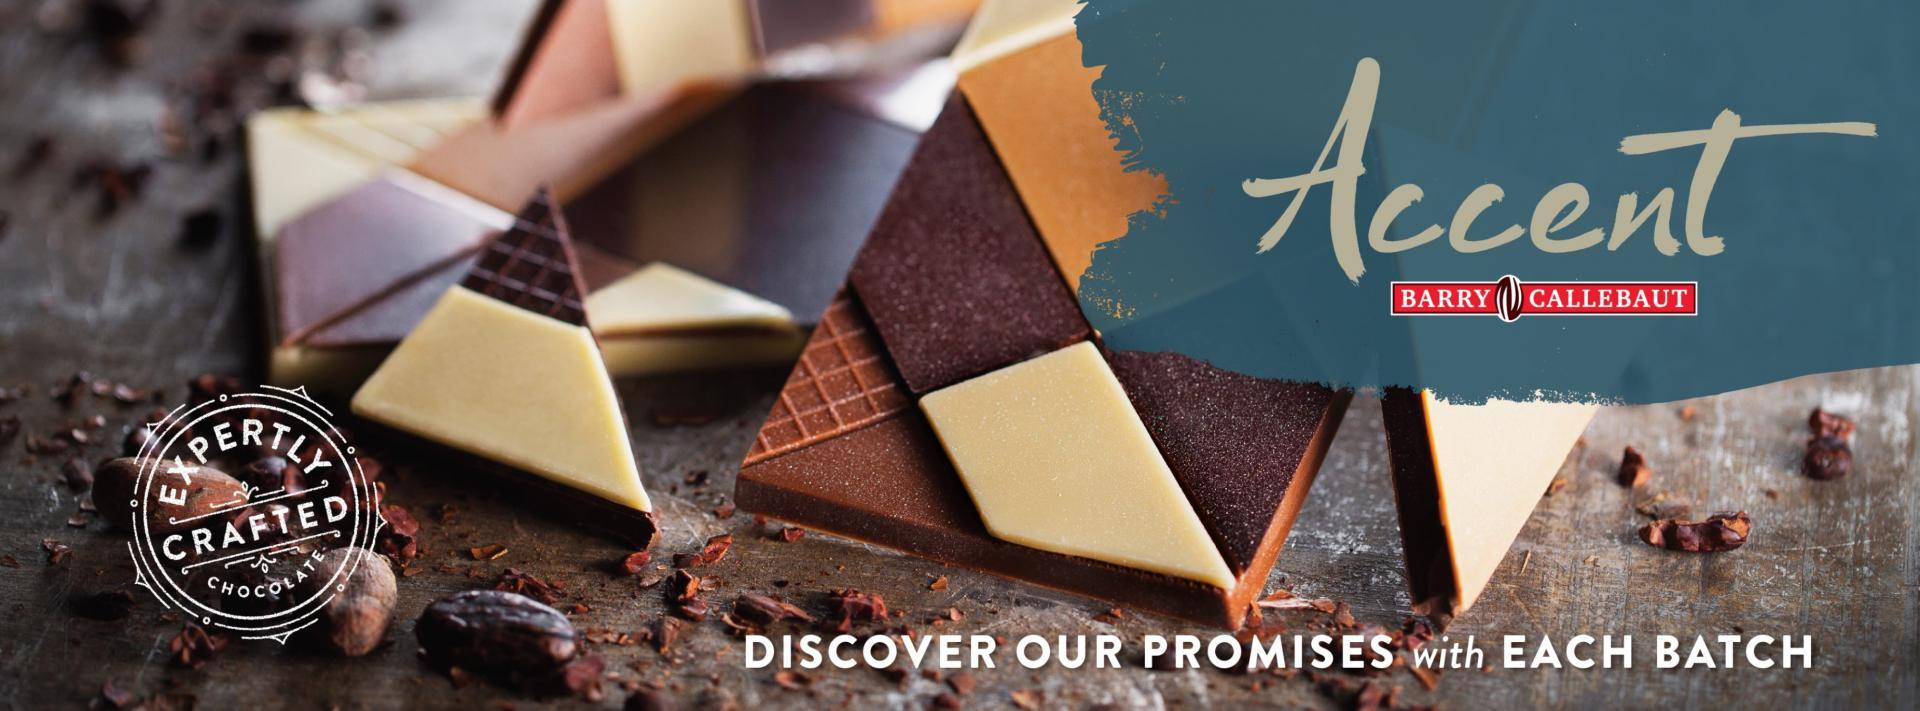 'Accent' written in a script font over a blue paint swatch